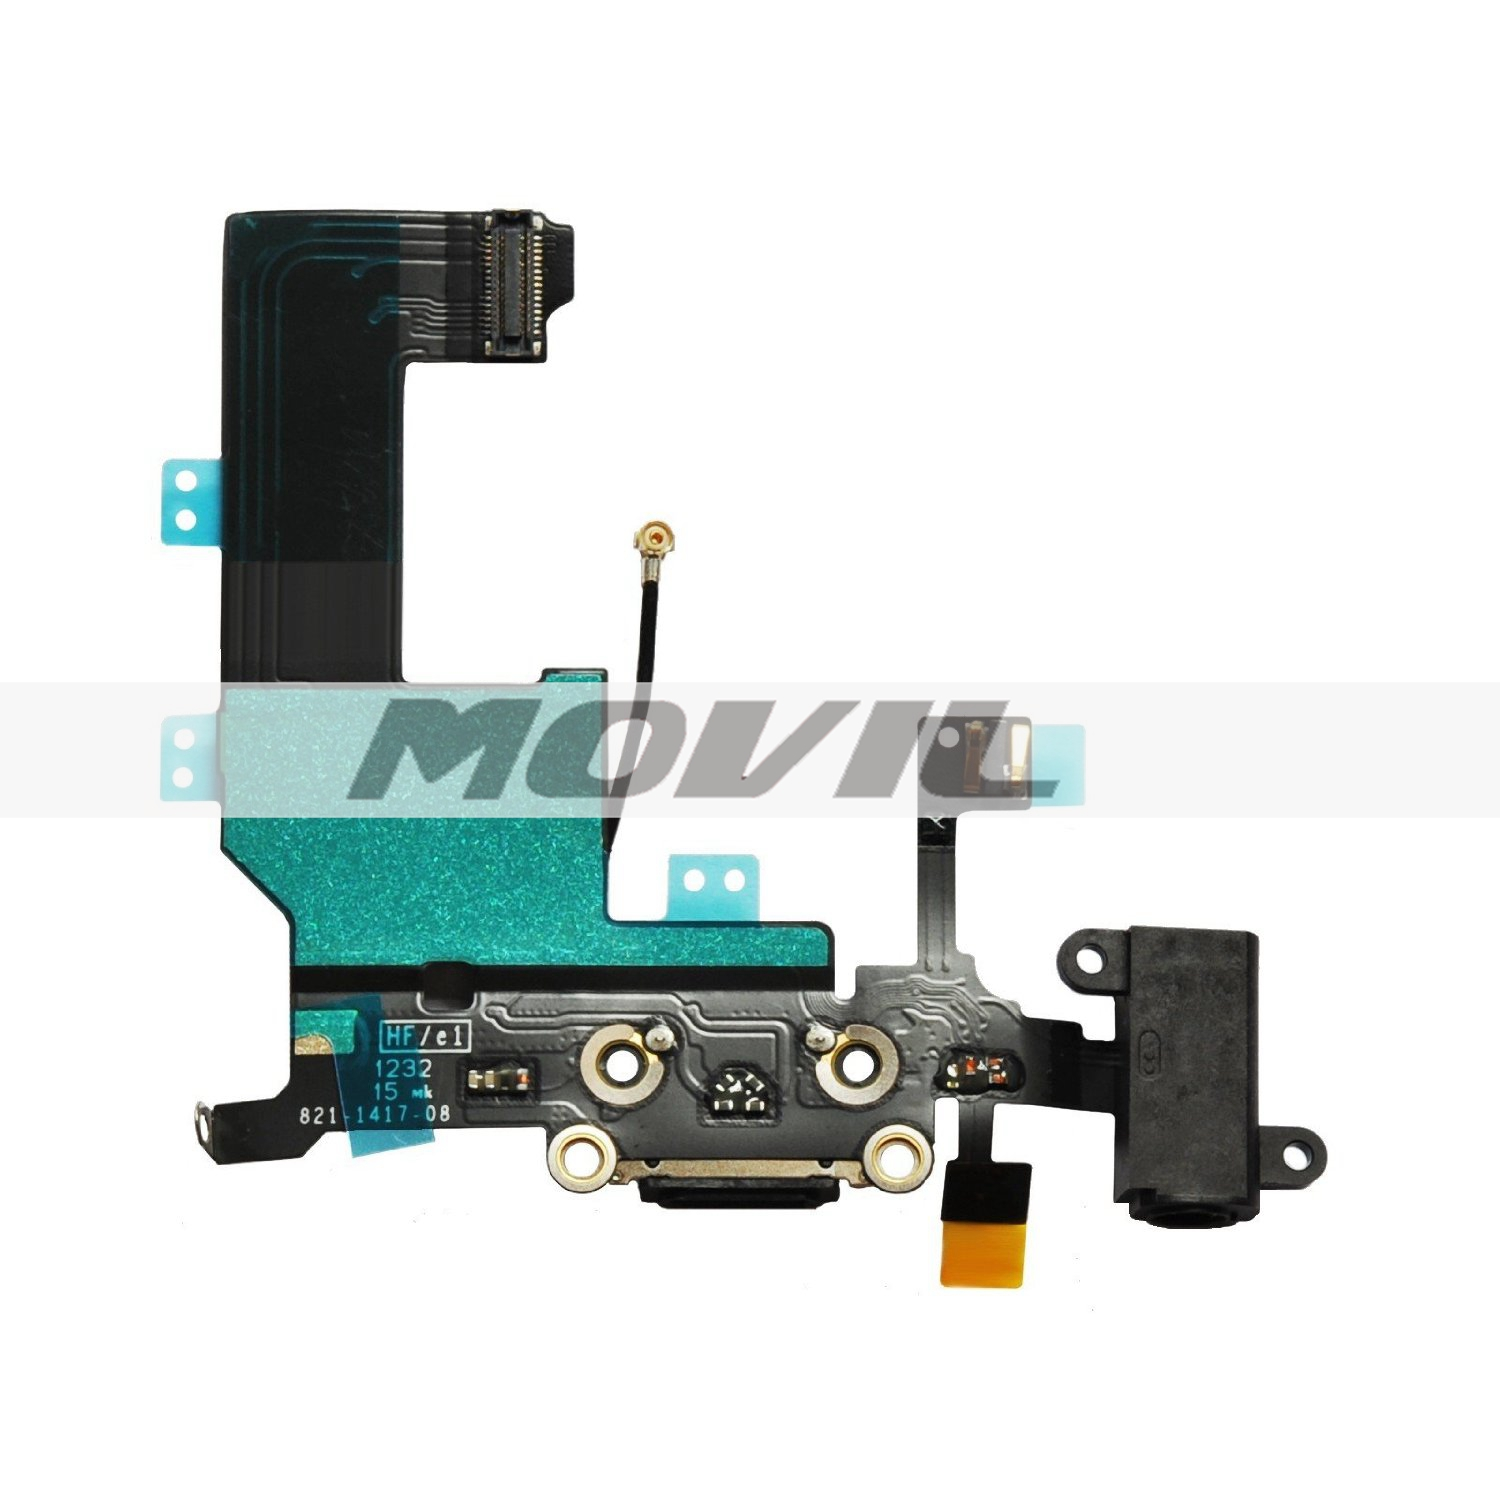 iPhone 5C Black Charger Port Dock Connector Flex Cable With Head Phone Audio Jack USB Port Charging port